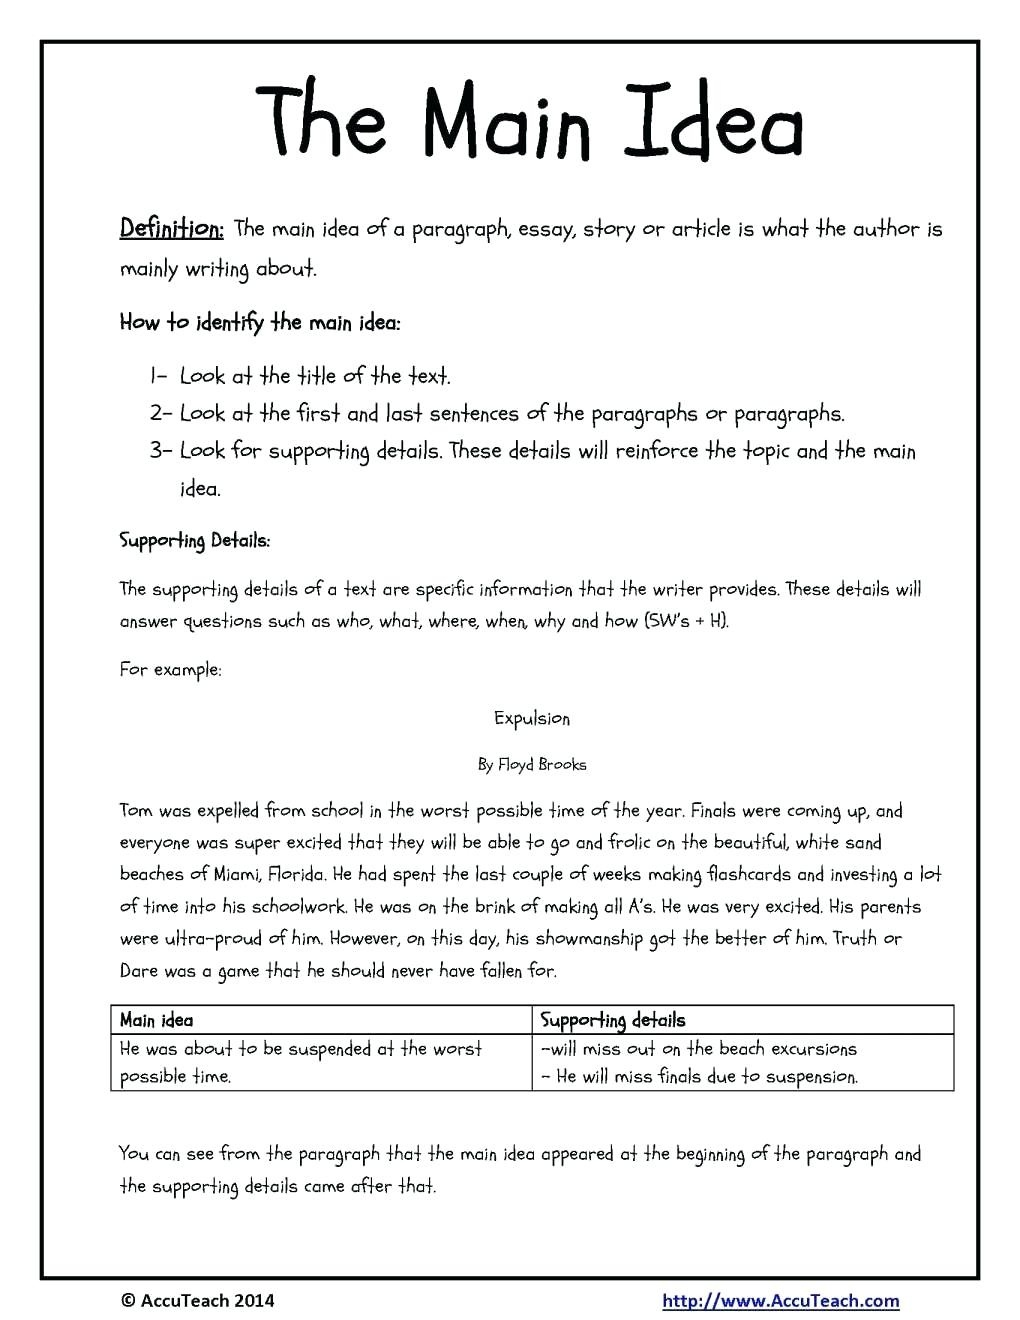 Free Comprehension Worksheets For Grade 3 Year 1 Reading - Free Printable Hindi Comprehension Worksheets For Grade 3